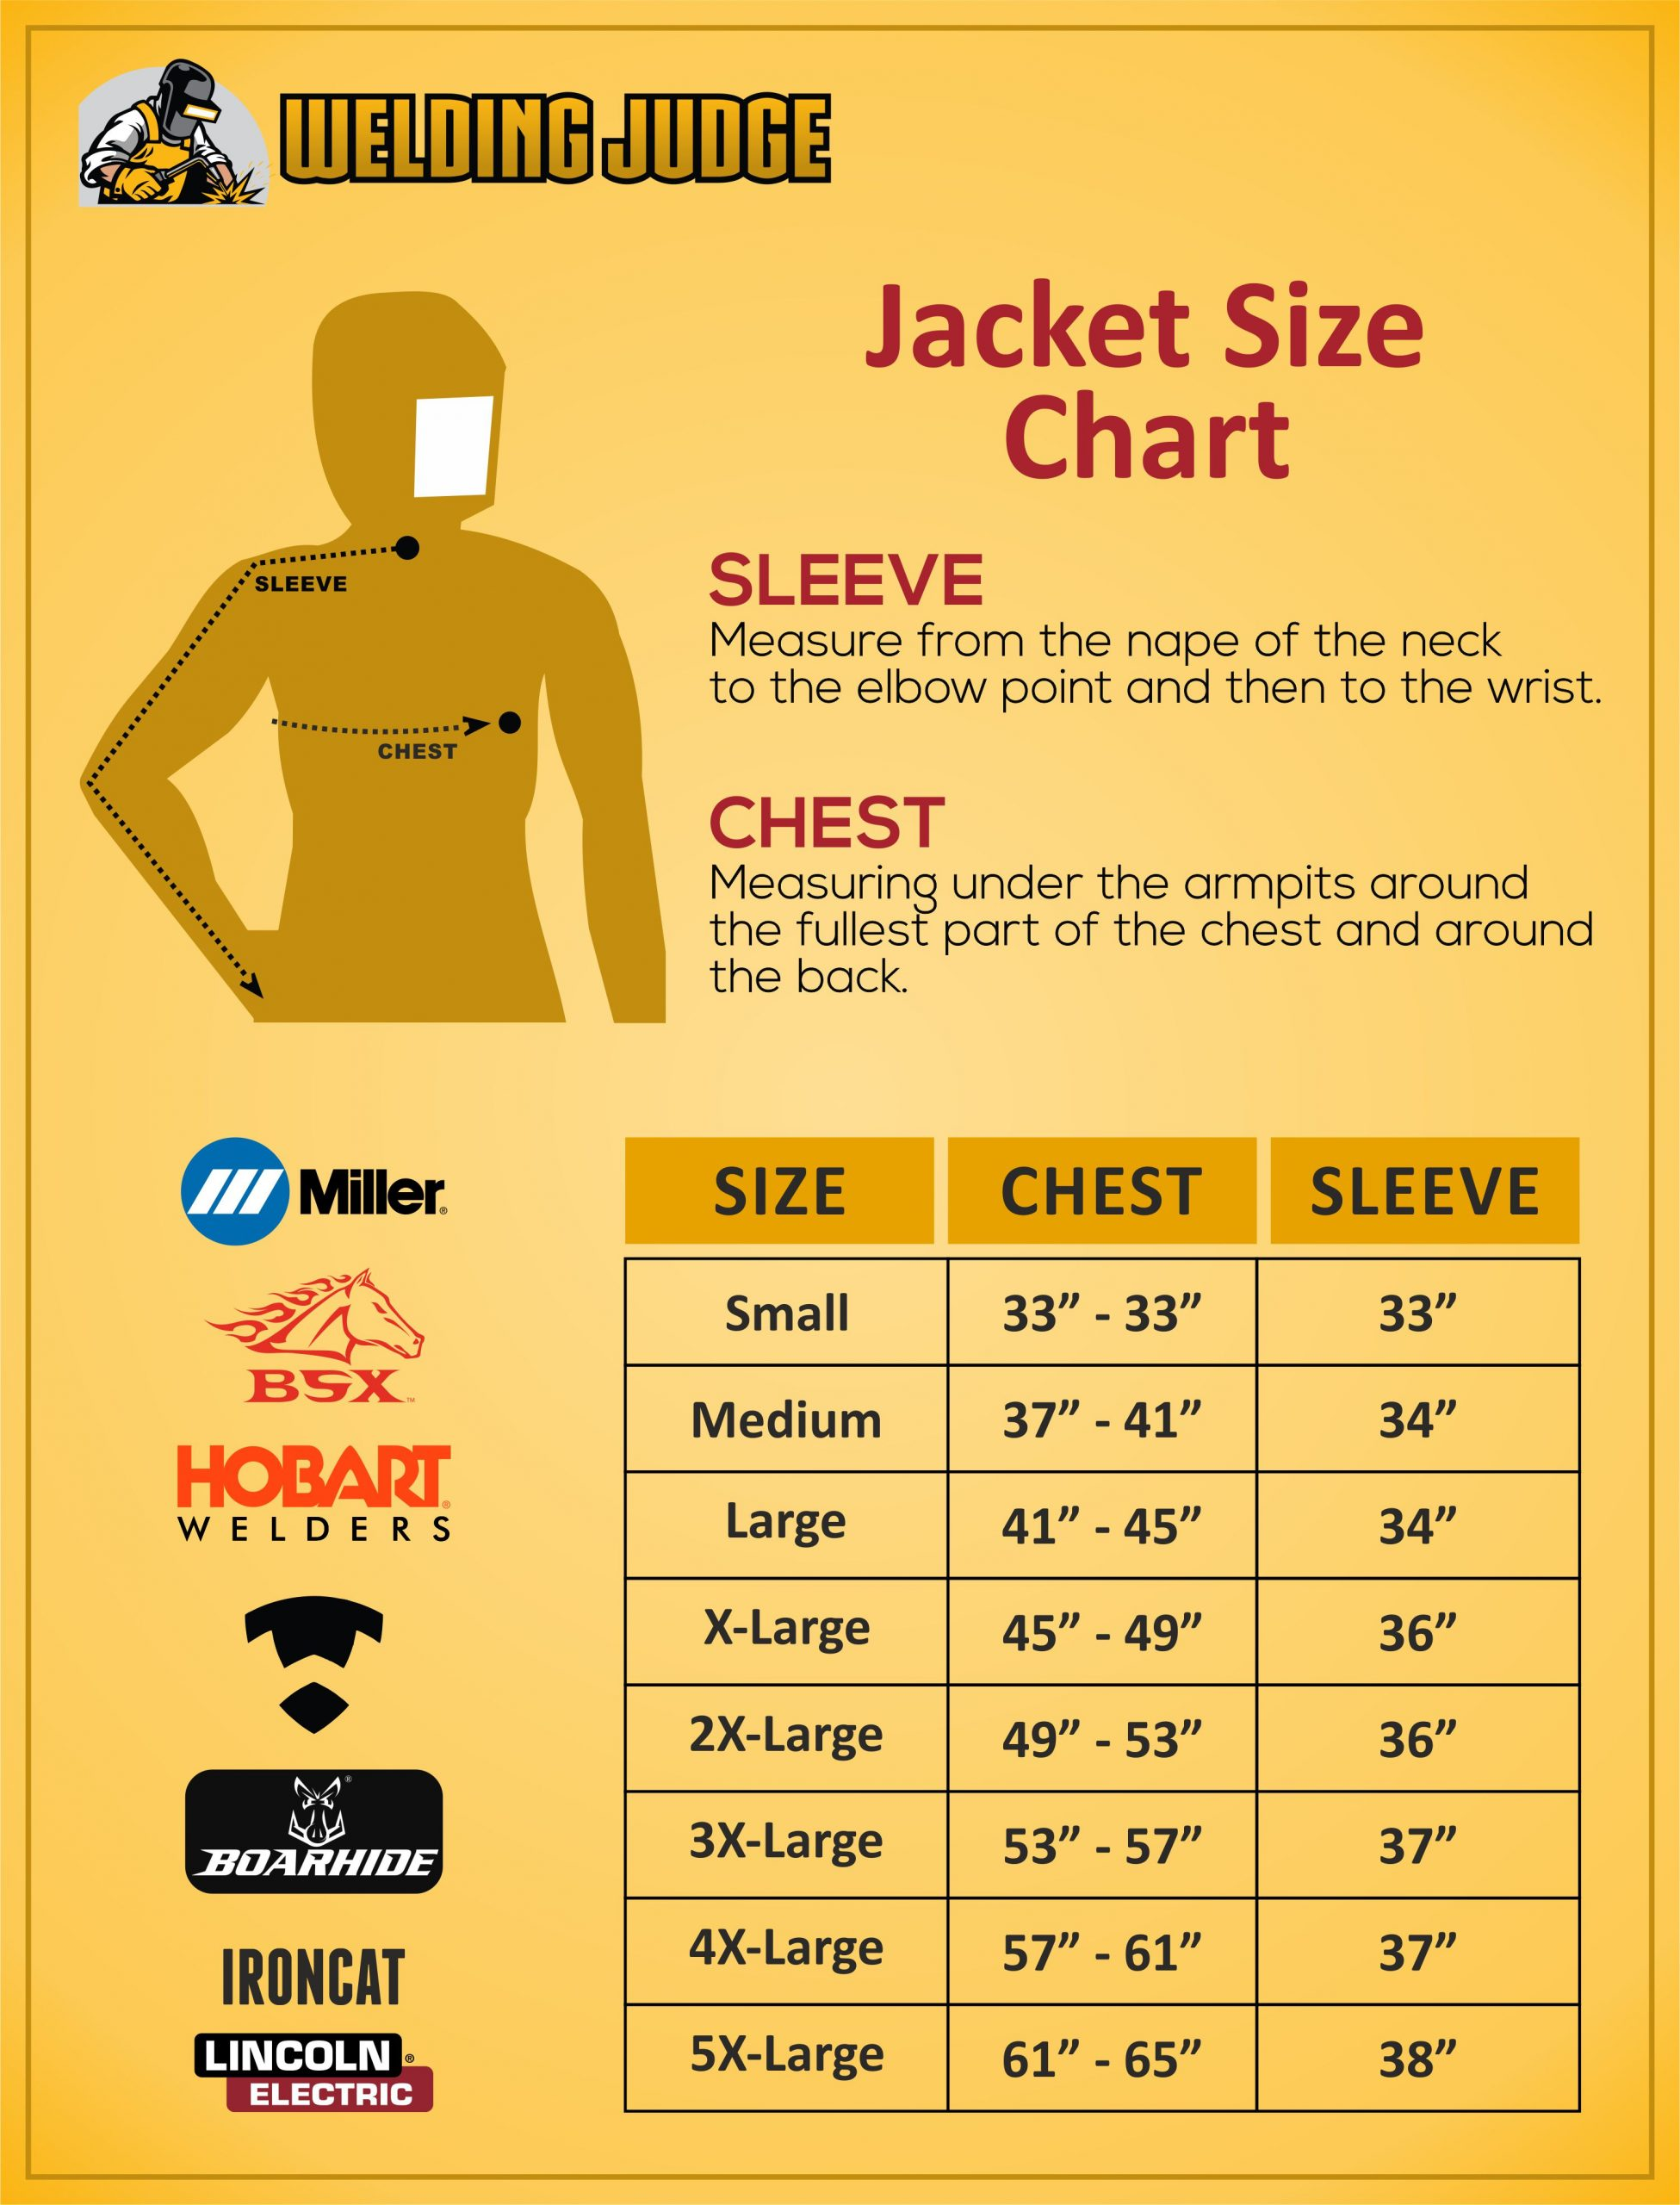 How to check welding jacket size